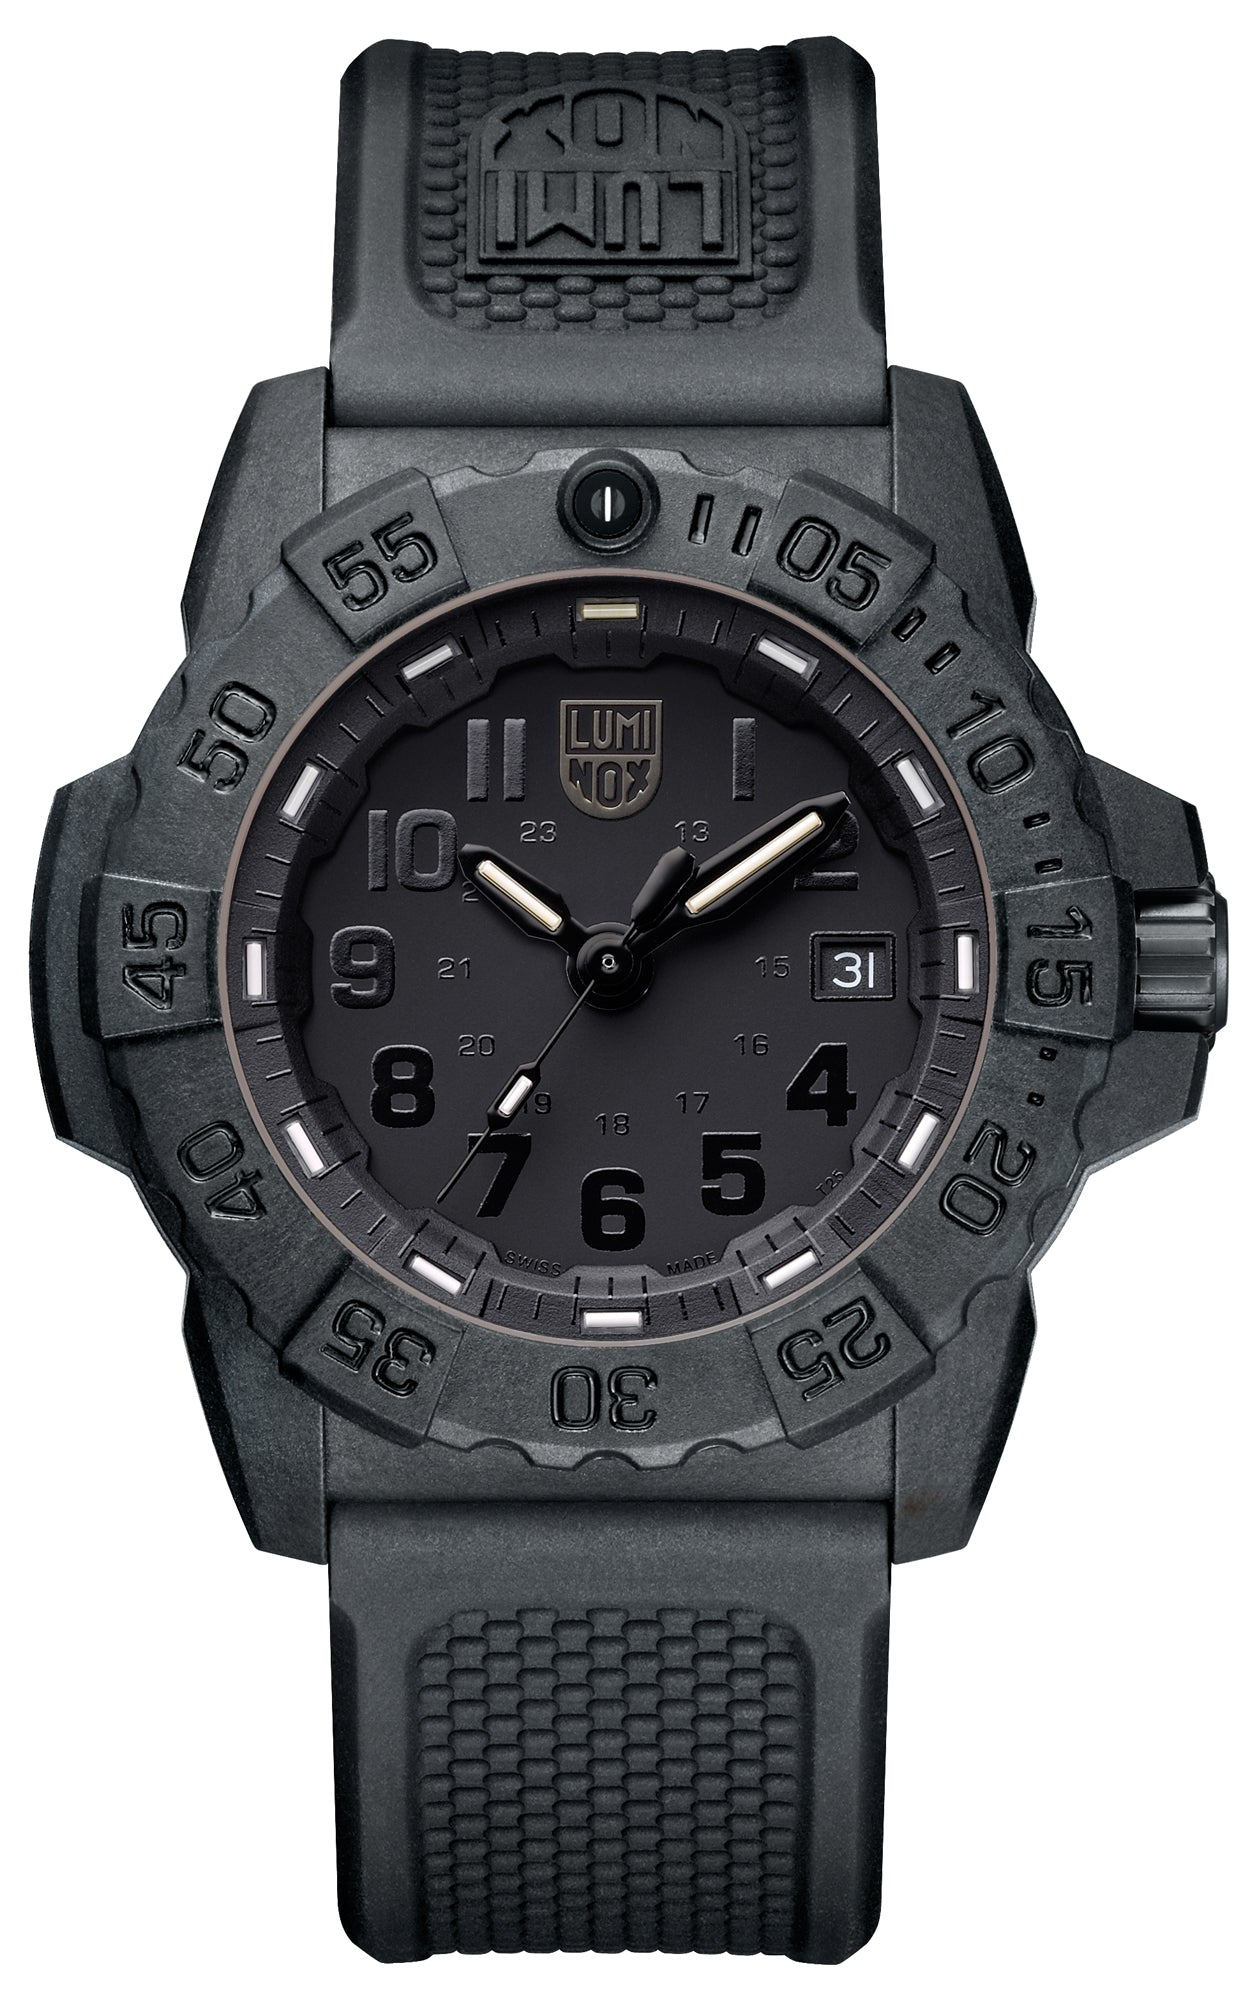 Navy SEAL 3501.BO